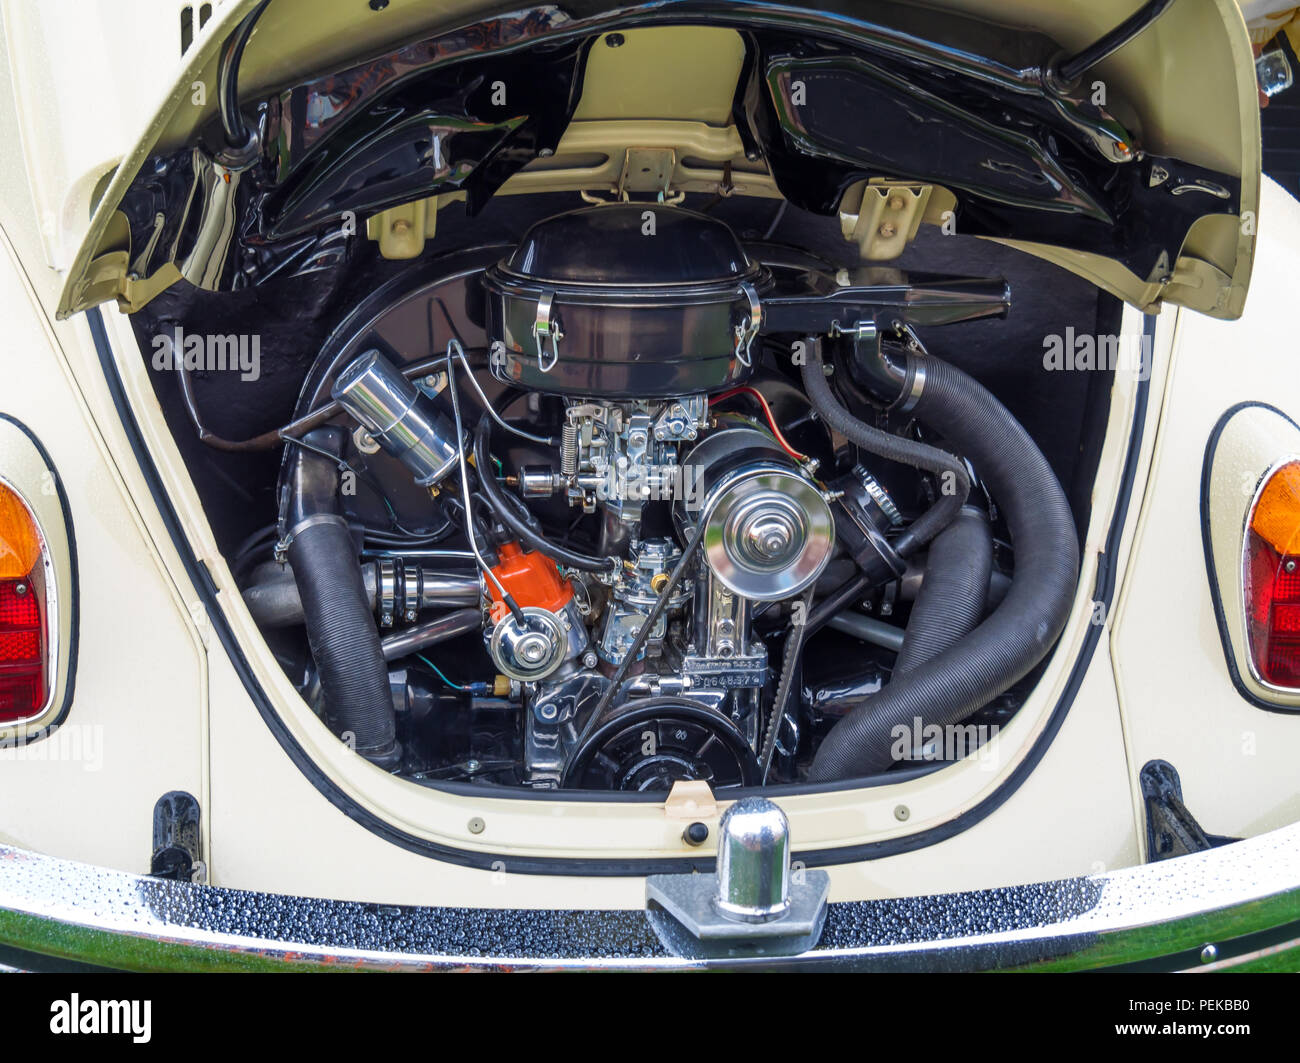 Immaculately clean engine compartment of a traditional 4 cylinder air cooled Volkswagen Car Stock Photo